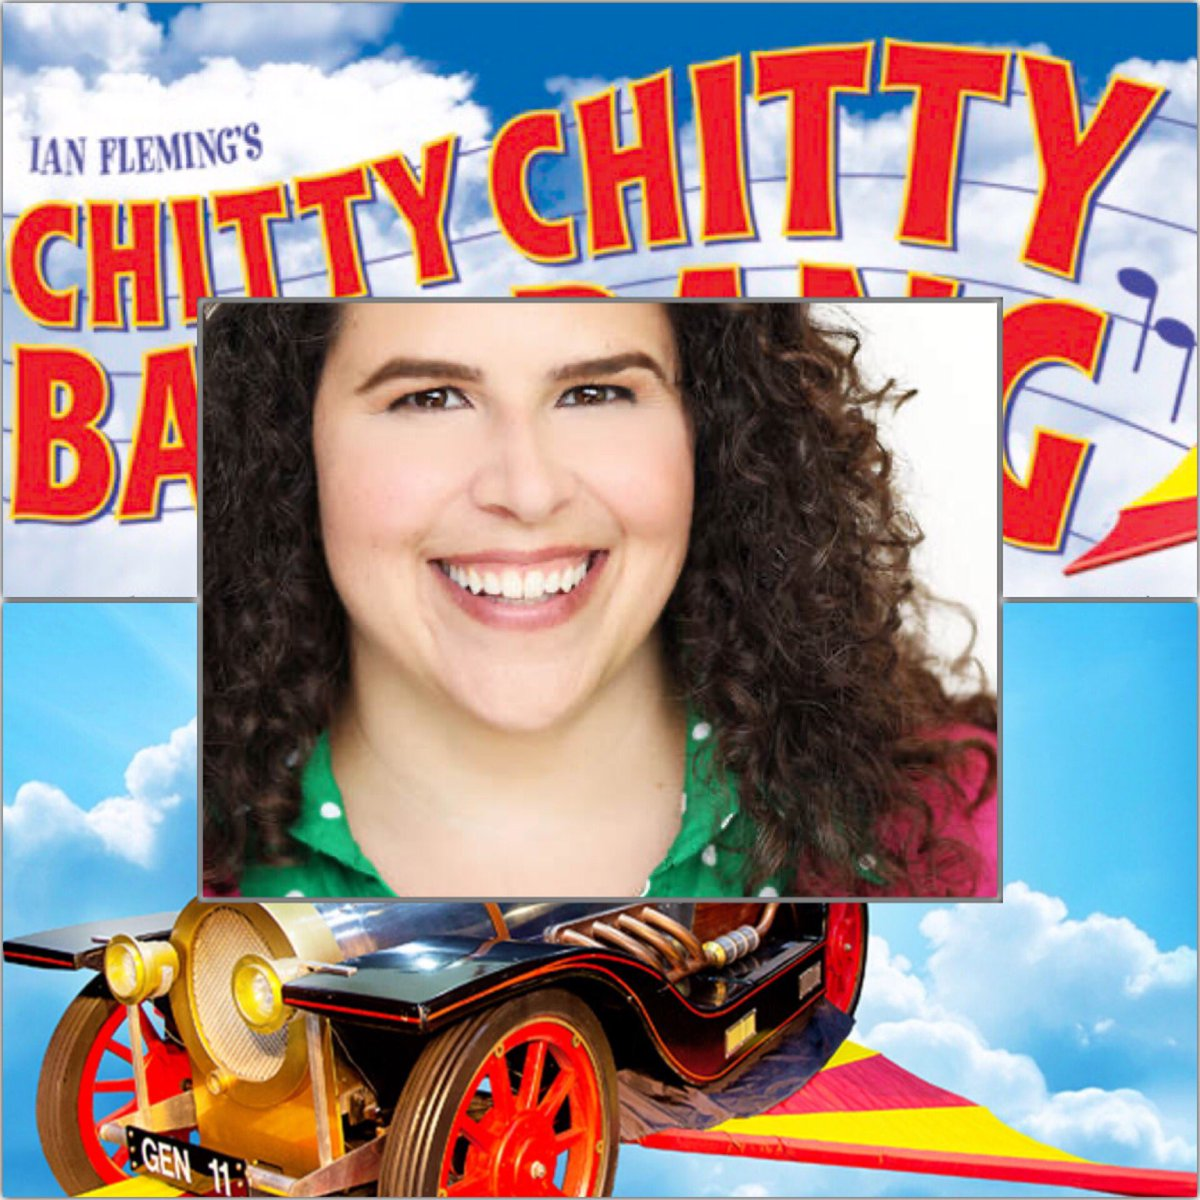 It is a hilarious new episode of Jim Lanahan and Friends podcast. We discover what Christine's Lady Region has in common with Chitty Chitty Bang Bang. Avail on iTunes and everywhere you find podcasts! @DoctorJonPaul @csinacore @scottysheldon @chickylaff #podcasts #thursdayvibes